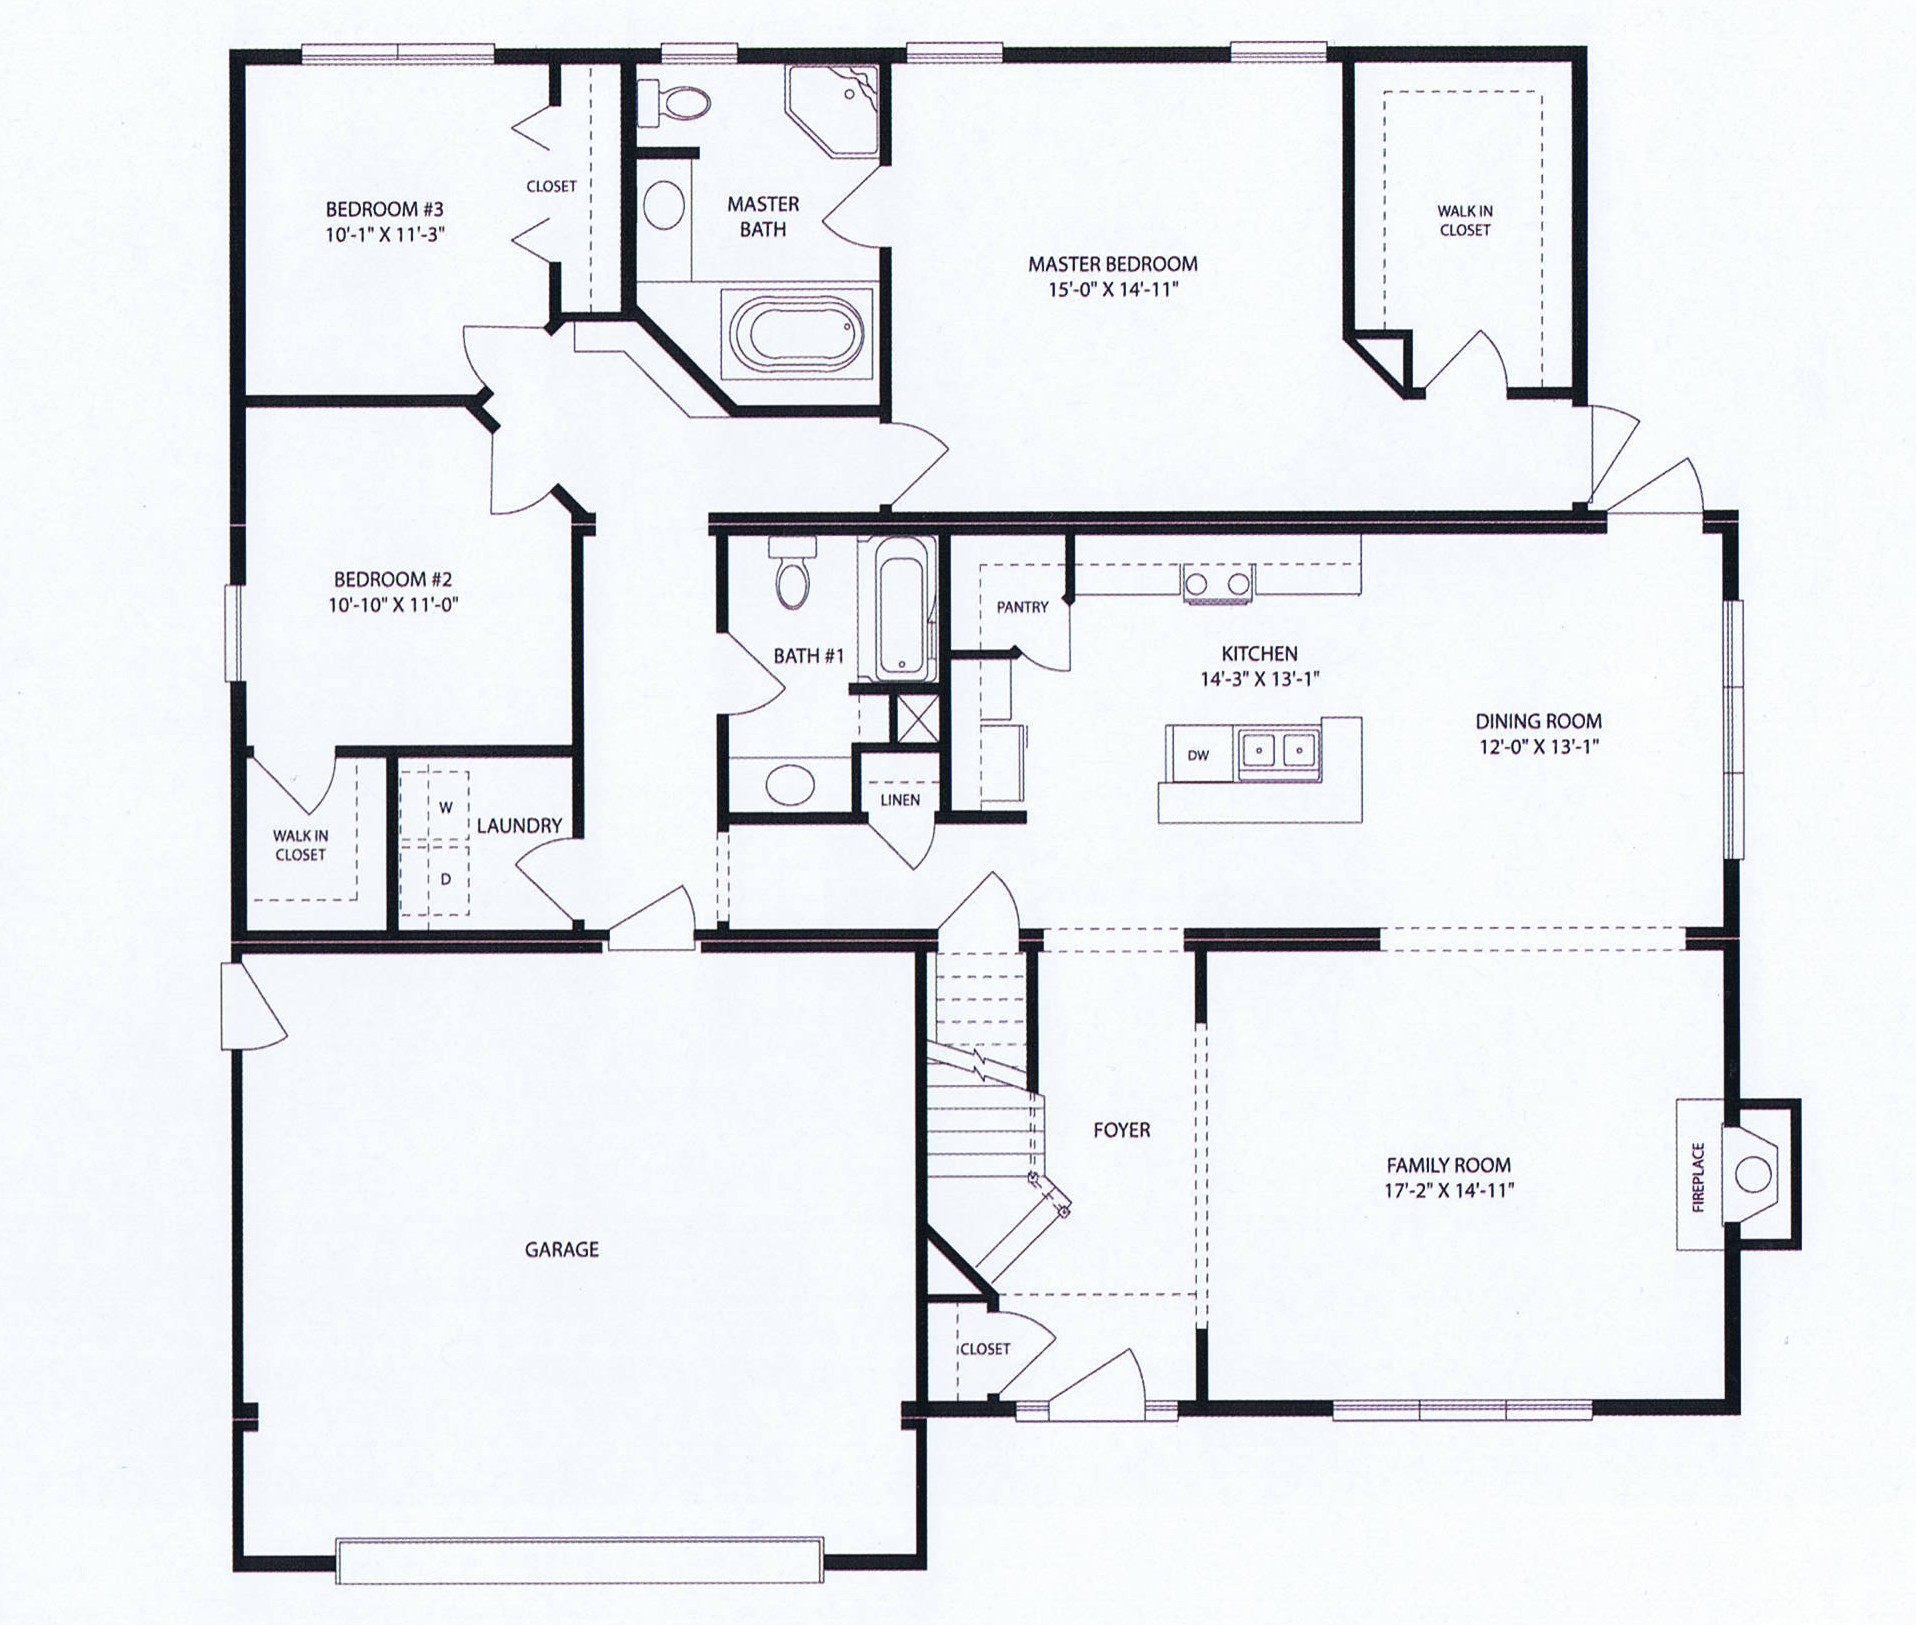 Floorplan castlefocus for Interior design floor plan